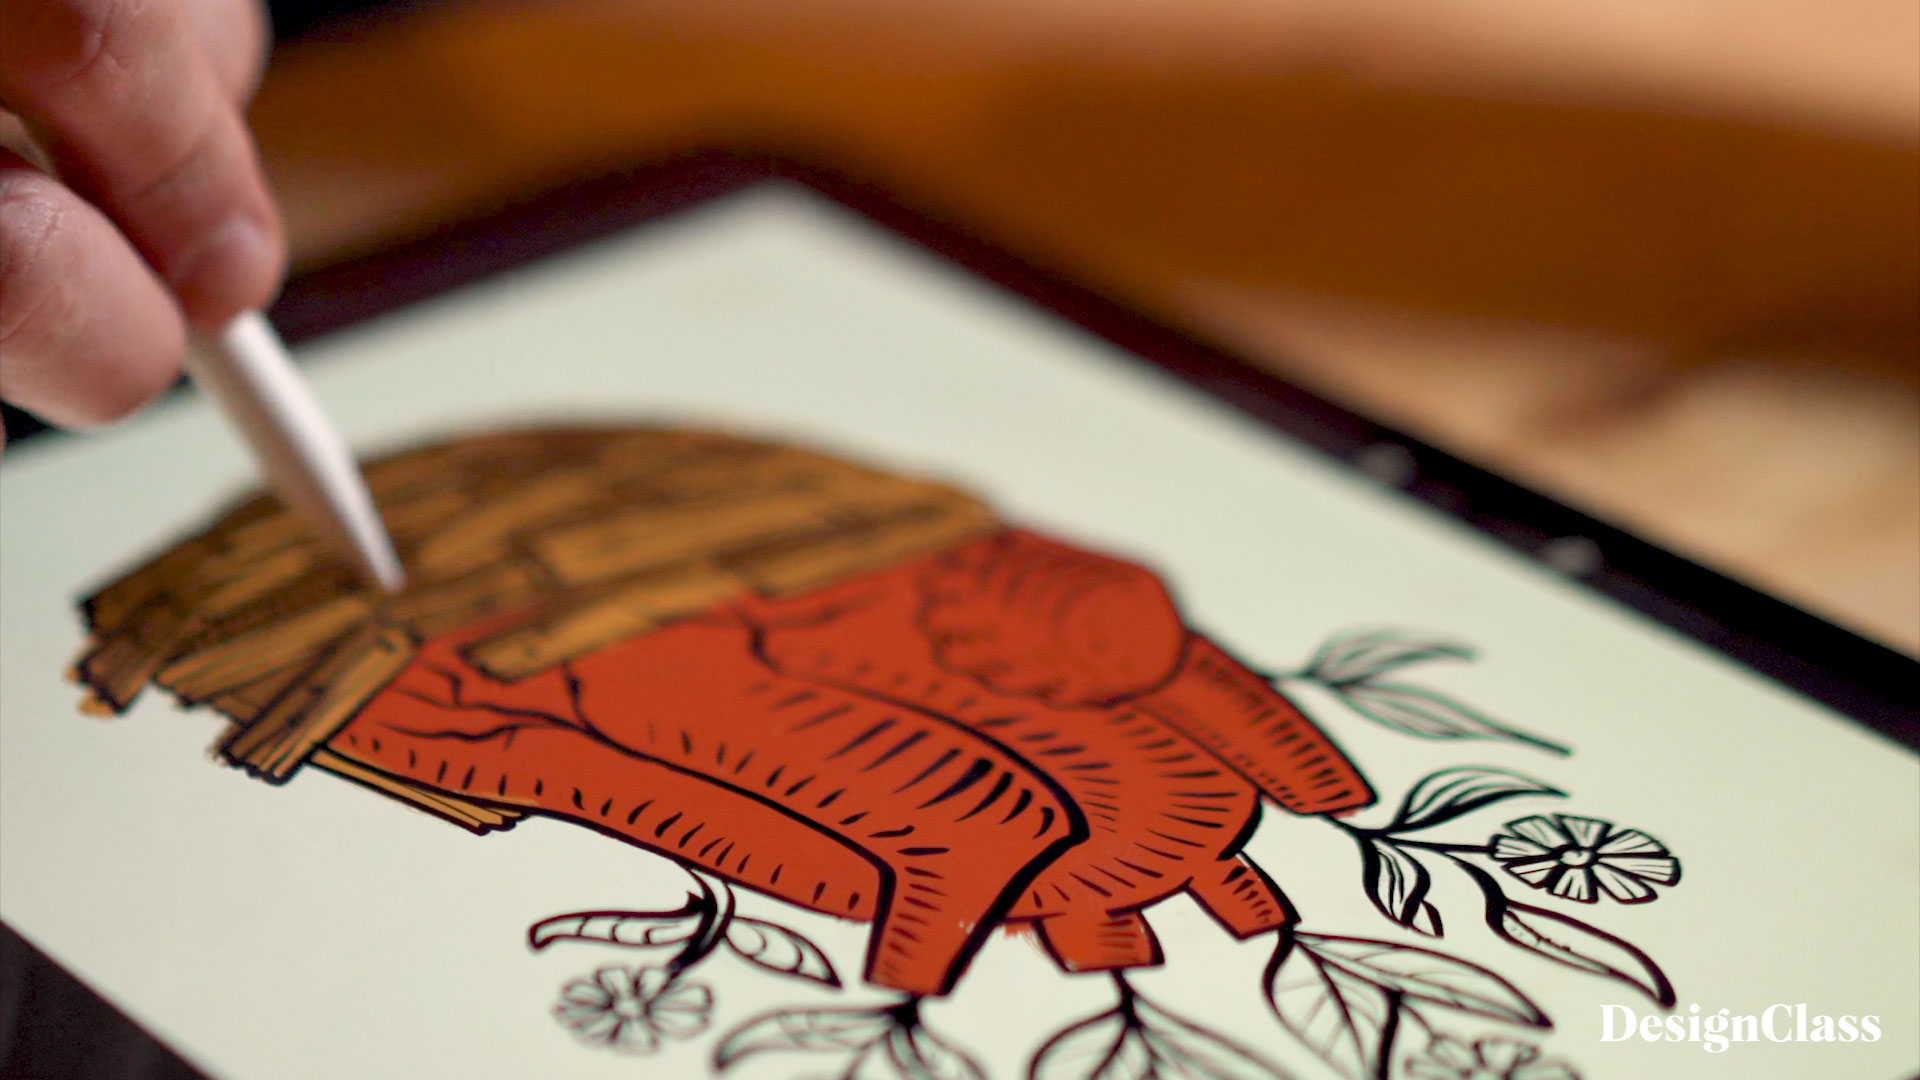 Illustrate an Epic Tattoo with Ryan McCabe